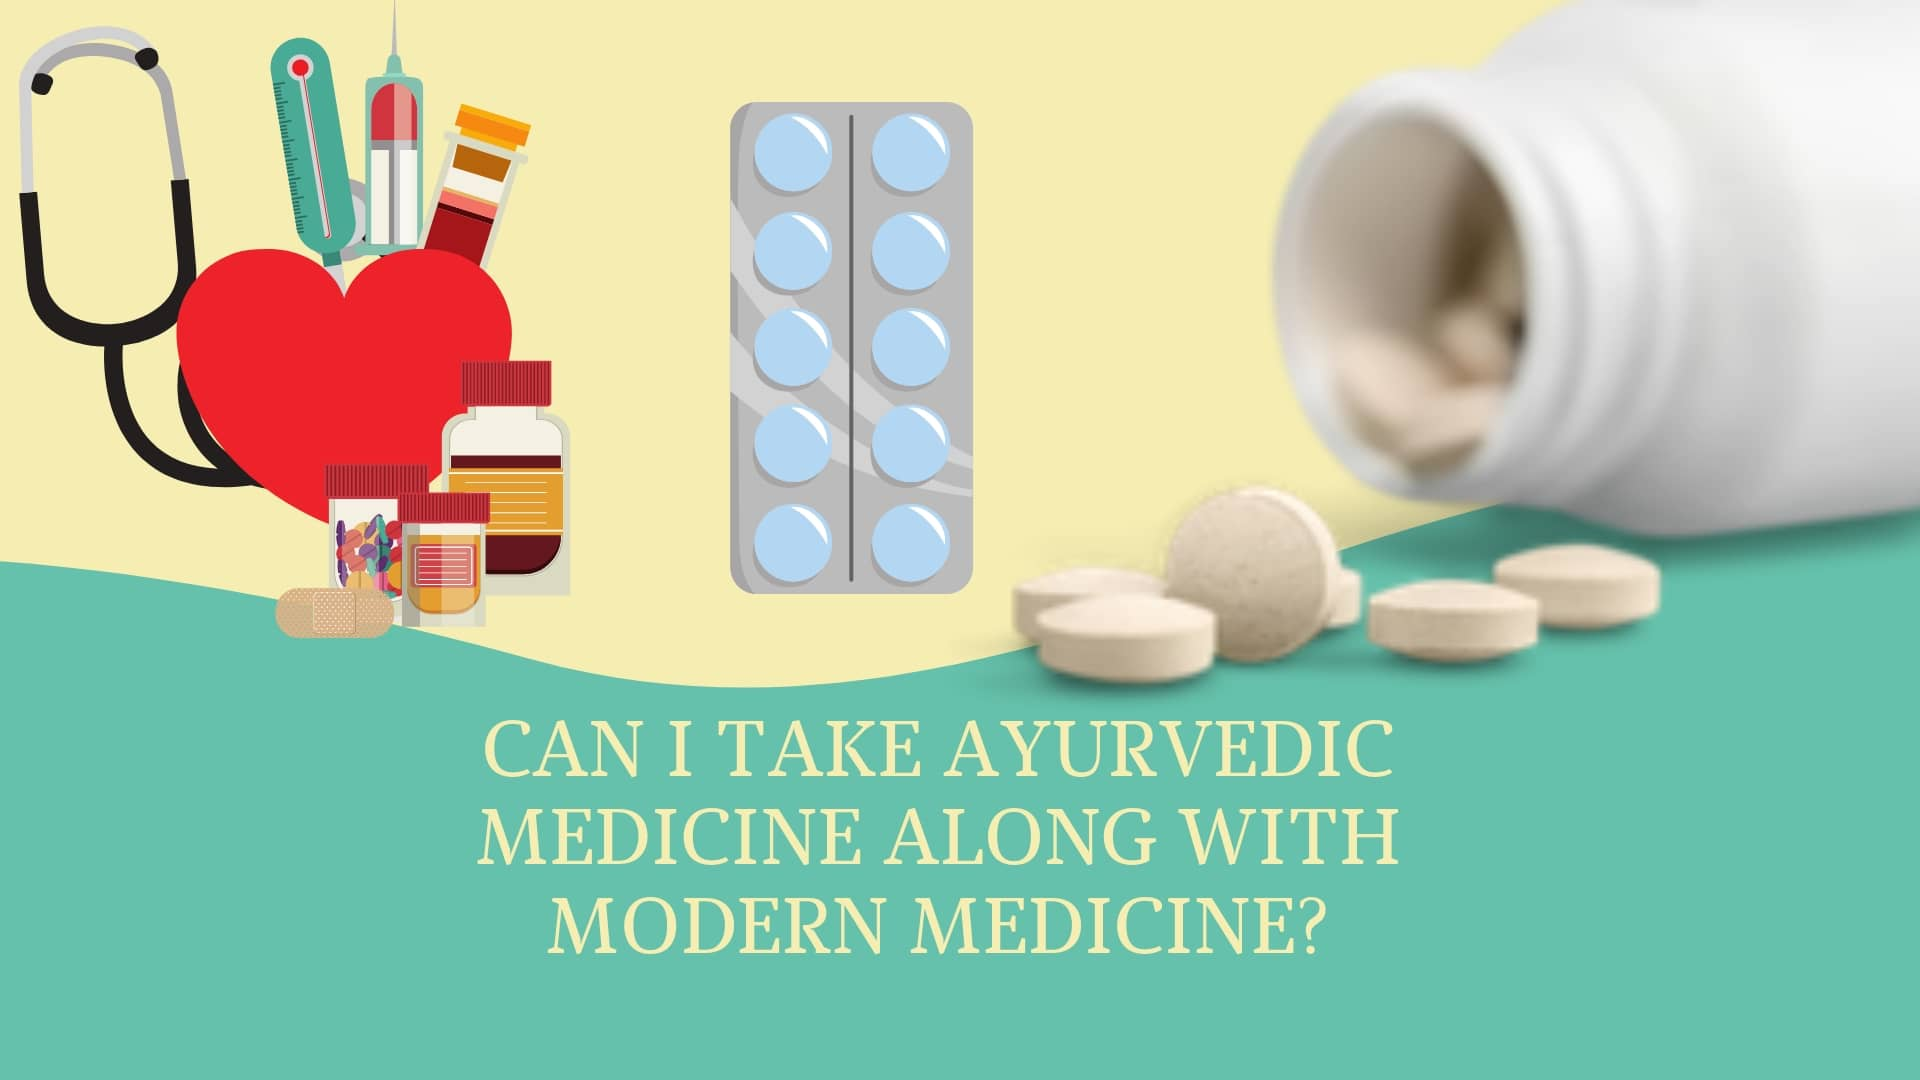 Can I Take Ayurvedic Medicine Along with Modern Medicine